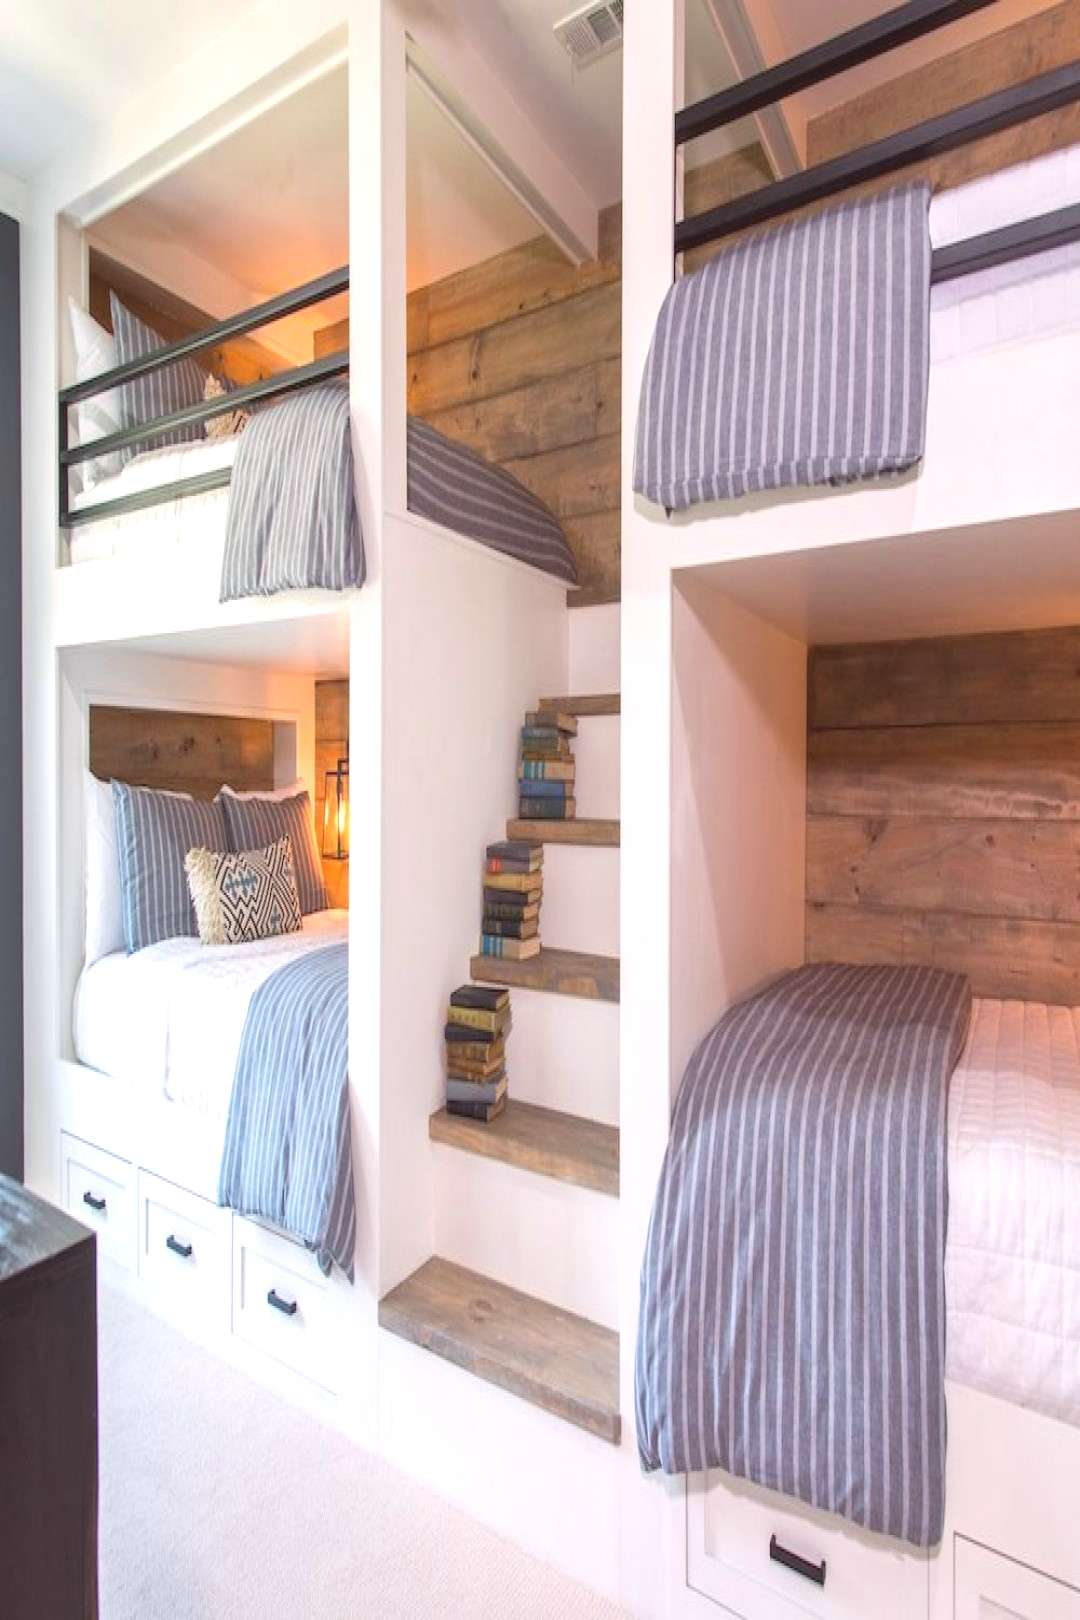 This bunk room is unlike any we've ever done before, because this one was built for adults rather